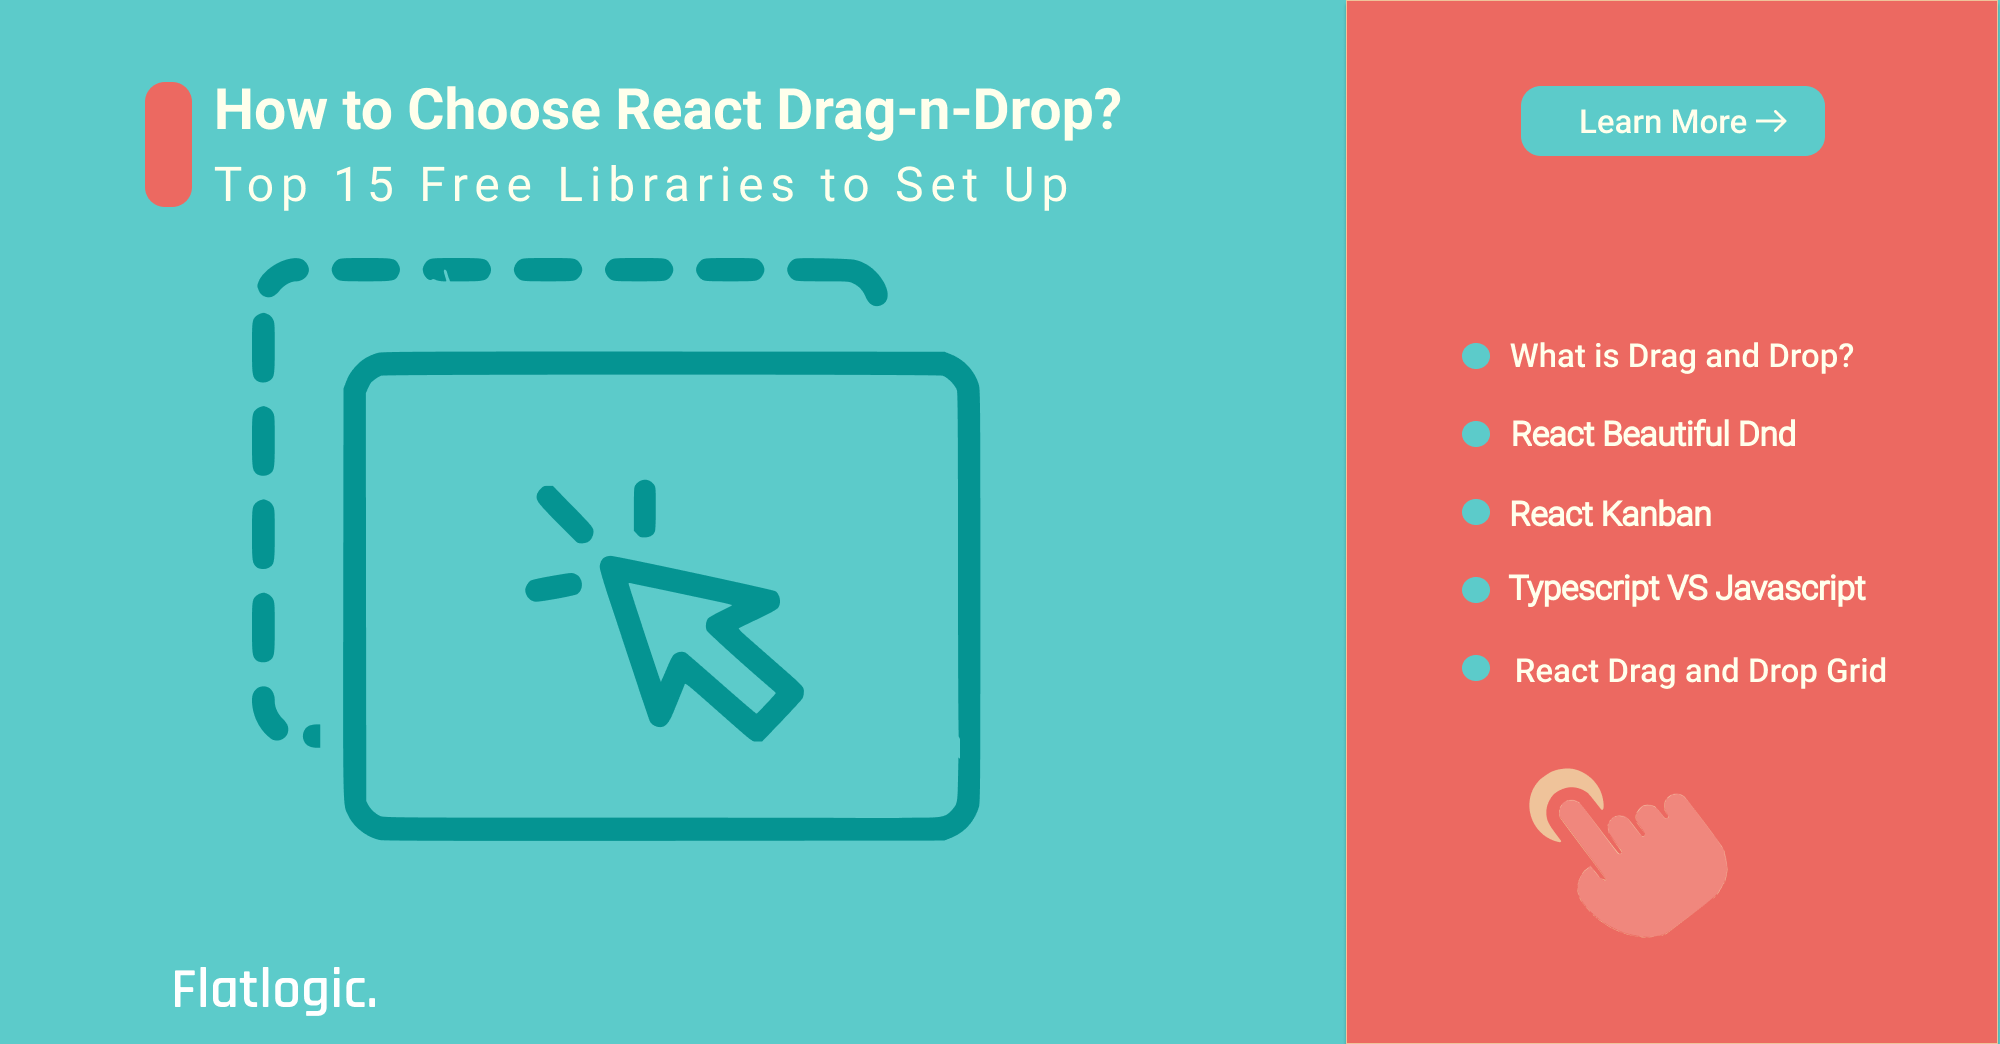 How to Choose the Best React Drag and Drop? Top 15 Free Libraries to Set Up